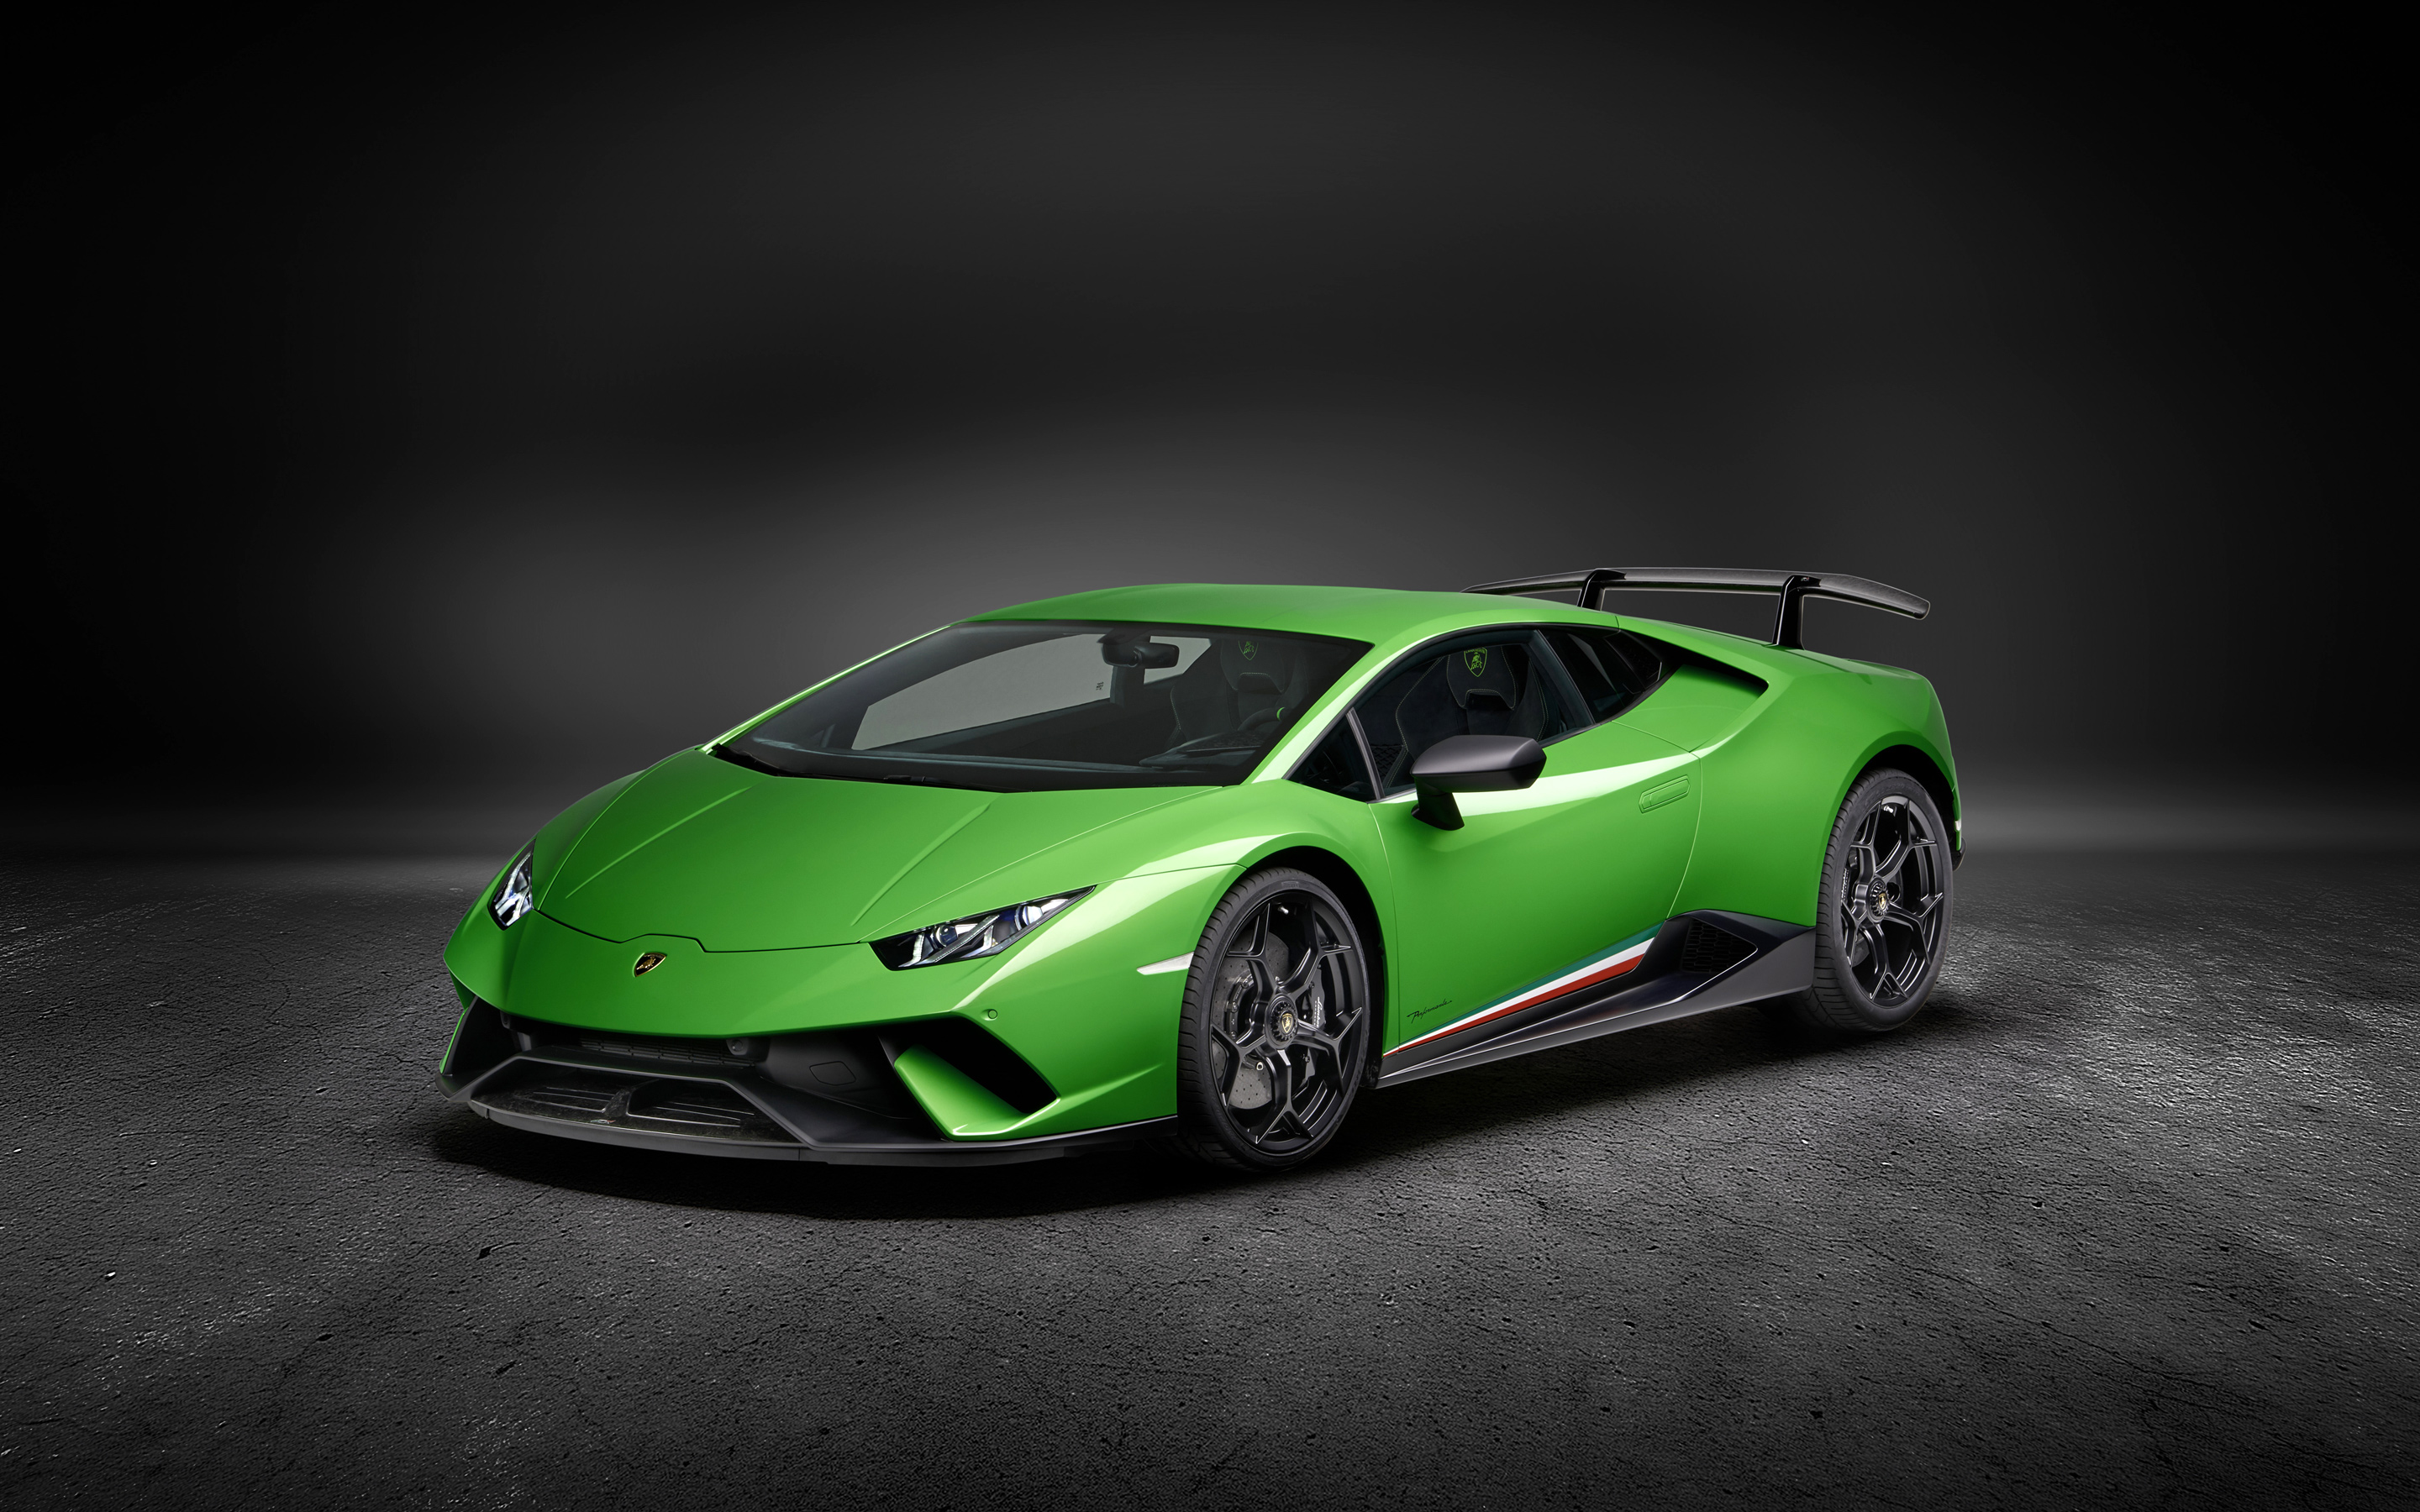 Lamborghini Huracan Performante Wallpapers